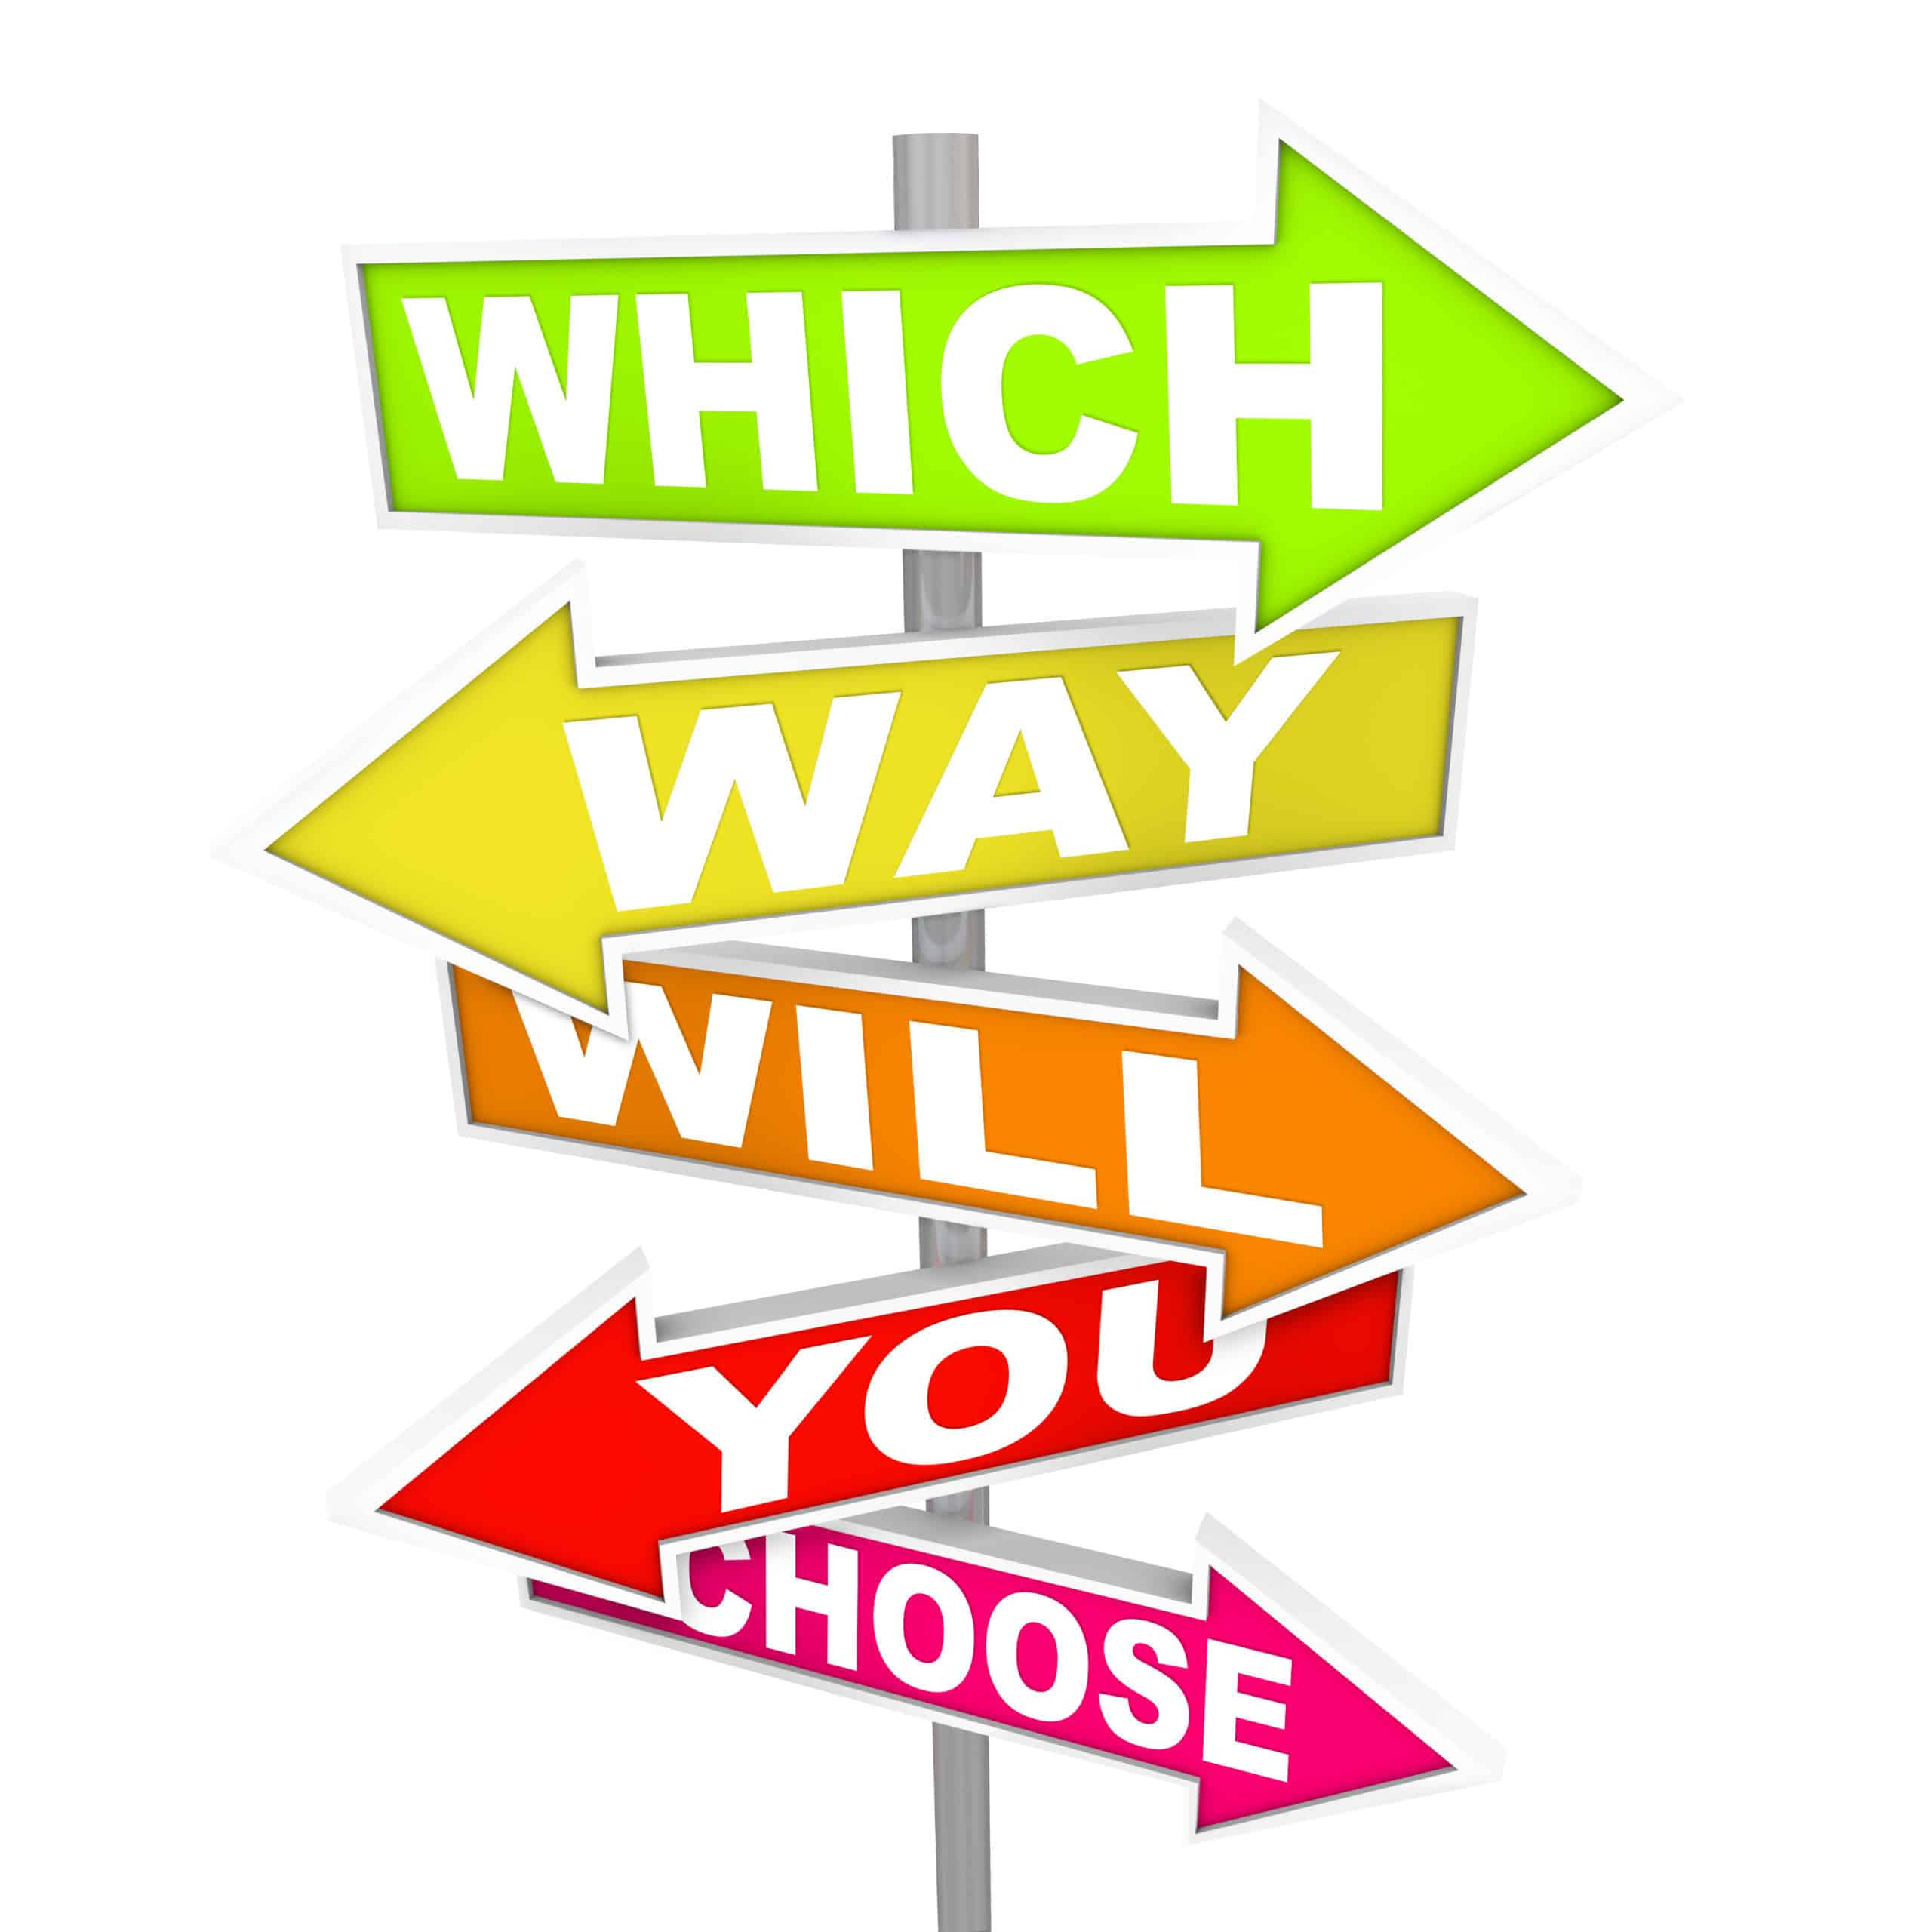 Several colorful arrow street signs with the question - which way will you choose?